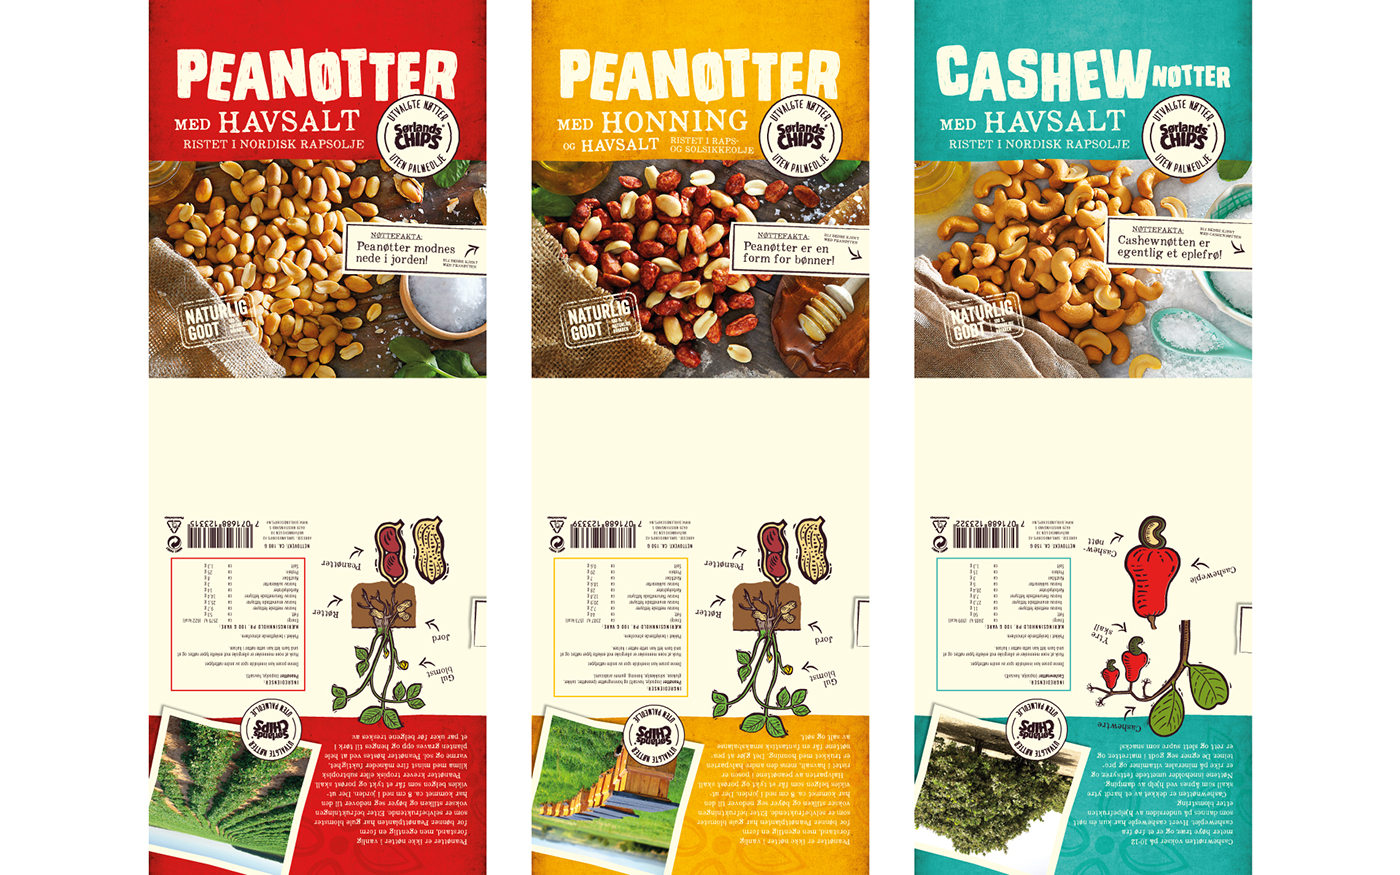 norway sørlandschips selected nuts peanuts cashew nuts honey nuts fjeldheimpartners concept logo identity